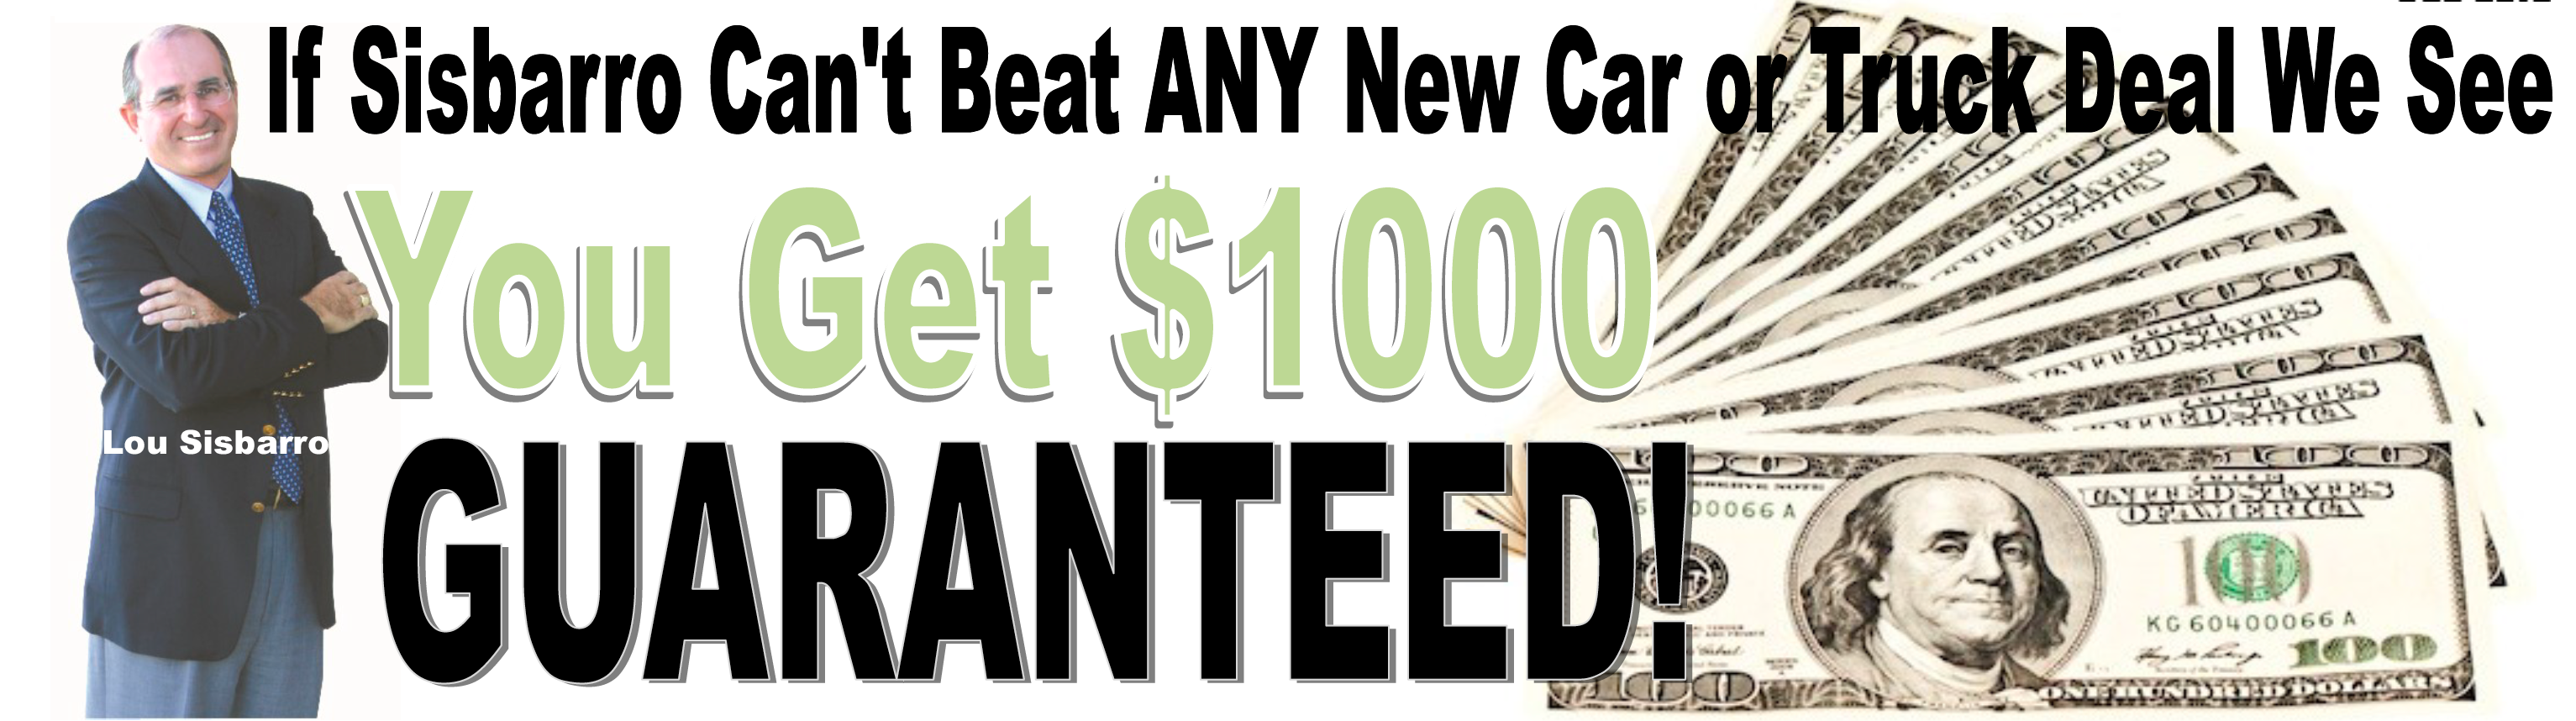 Sisbarro will beat any car or truck deal we see or we'll give you $1000.